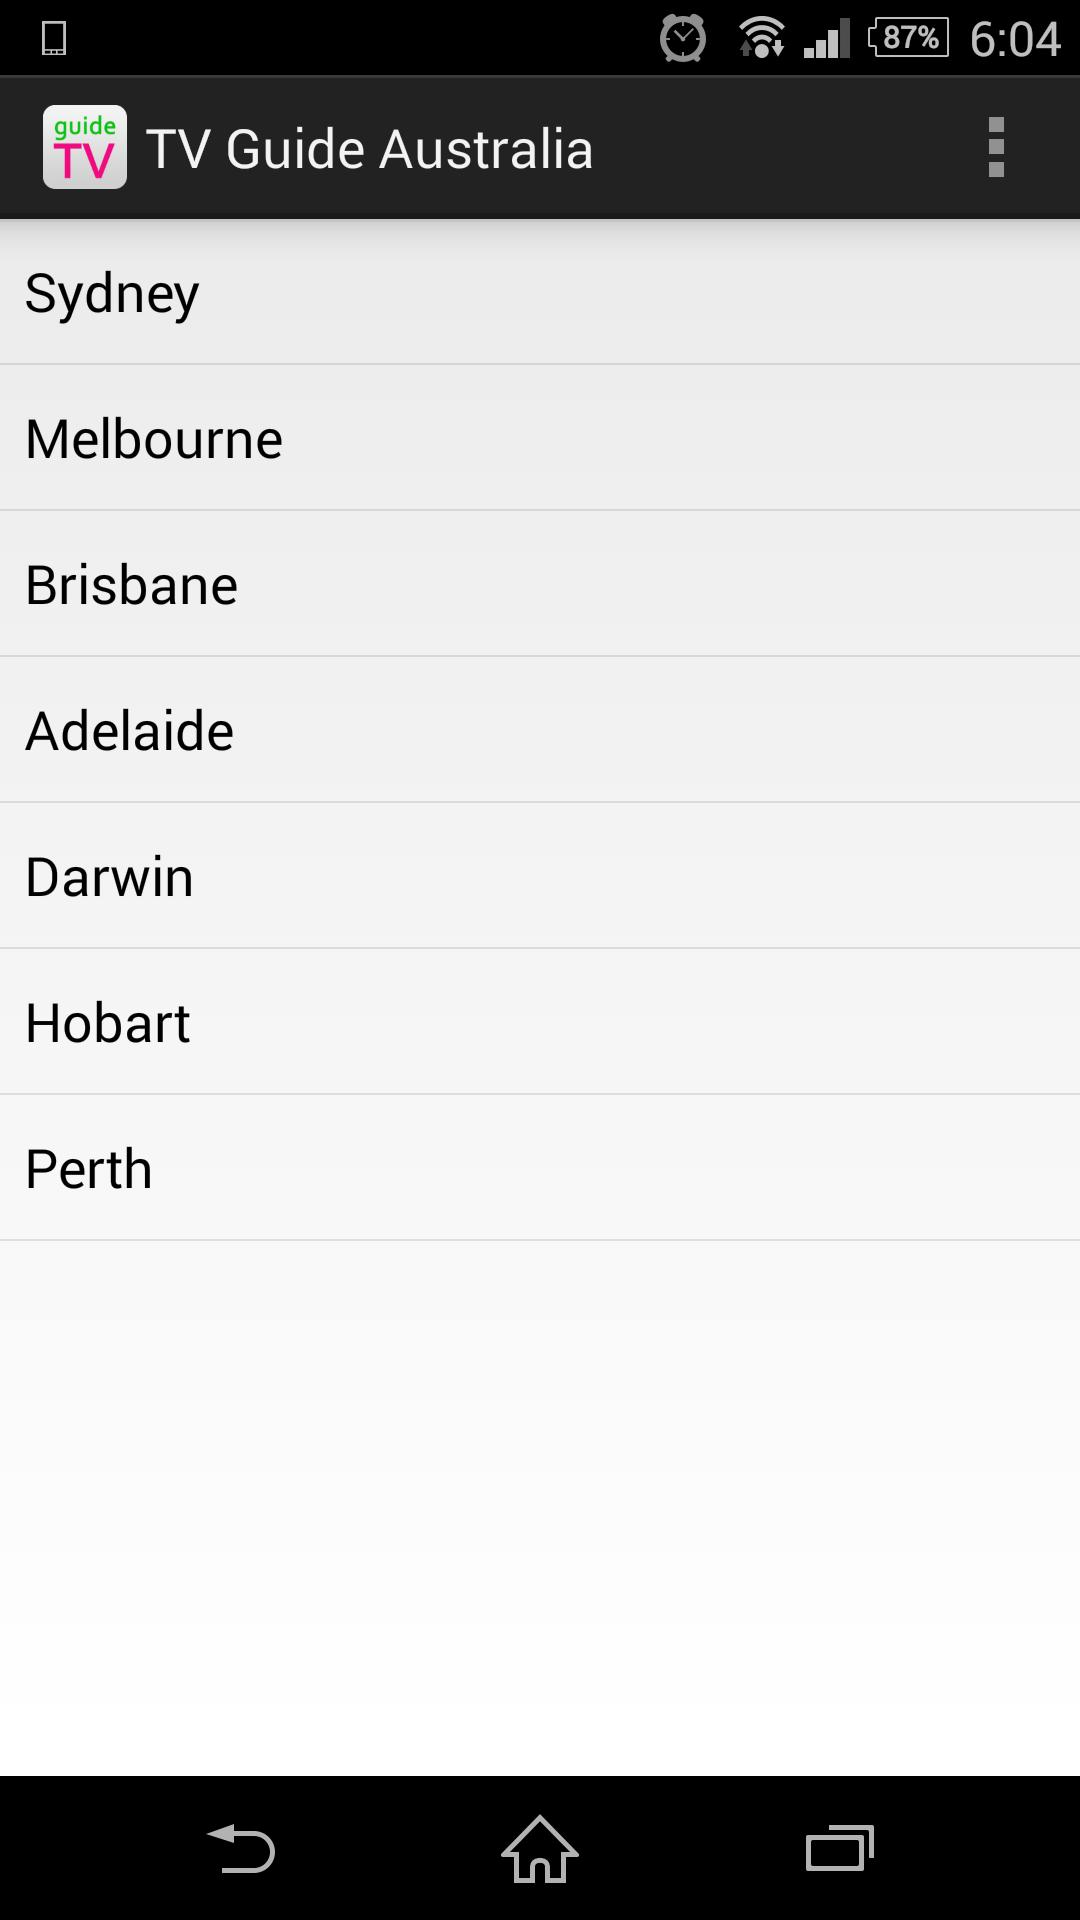 TV Guide Australia for Android - APK Download